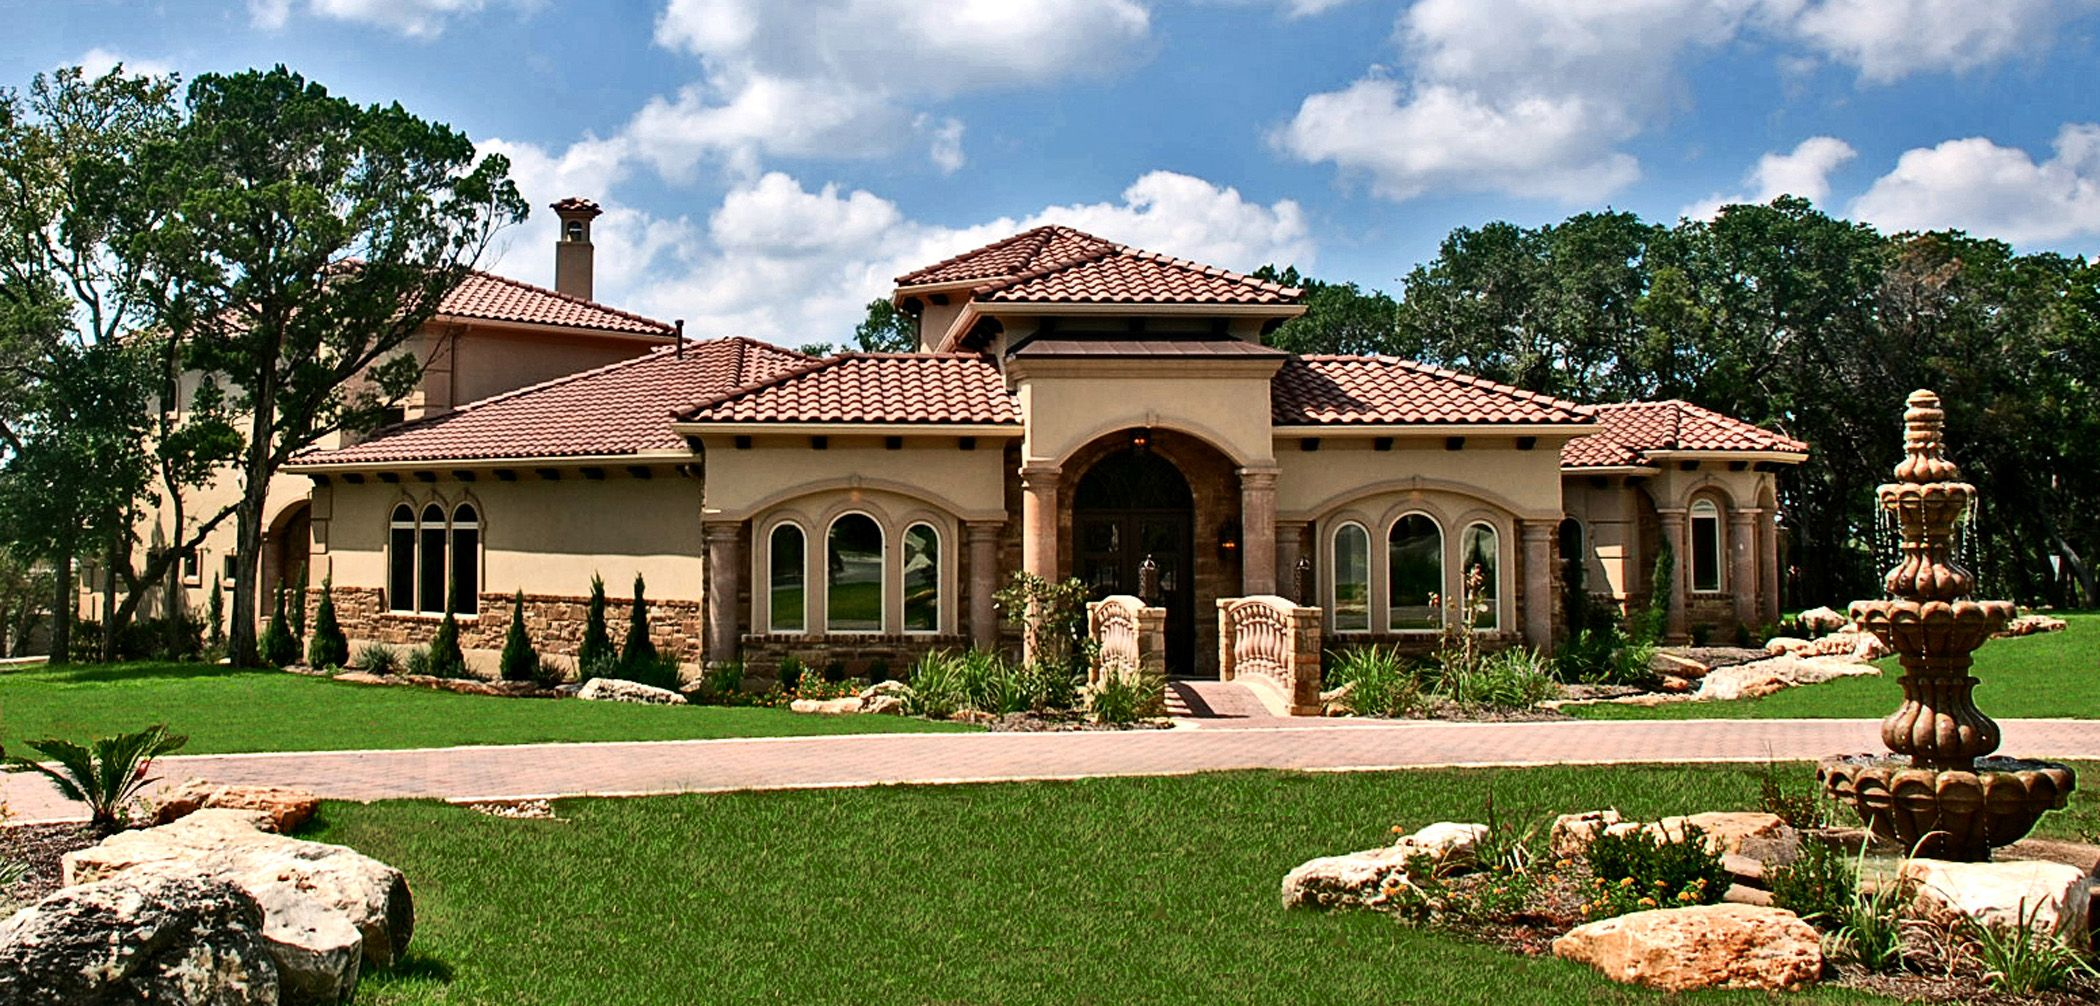 Custom Home Exteriors Model lakeway texas tuscan front elevationzbranek & holt custom